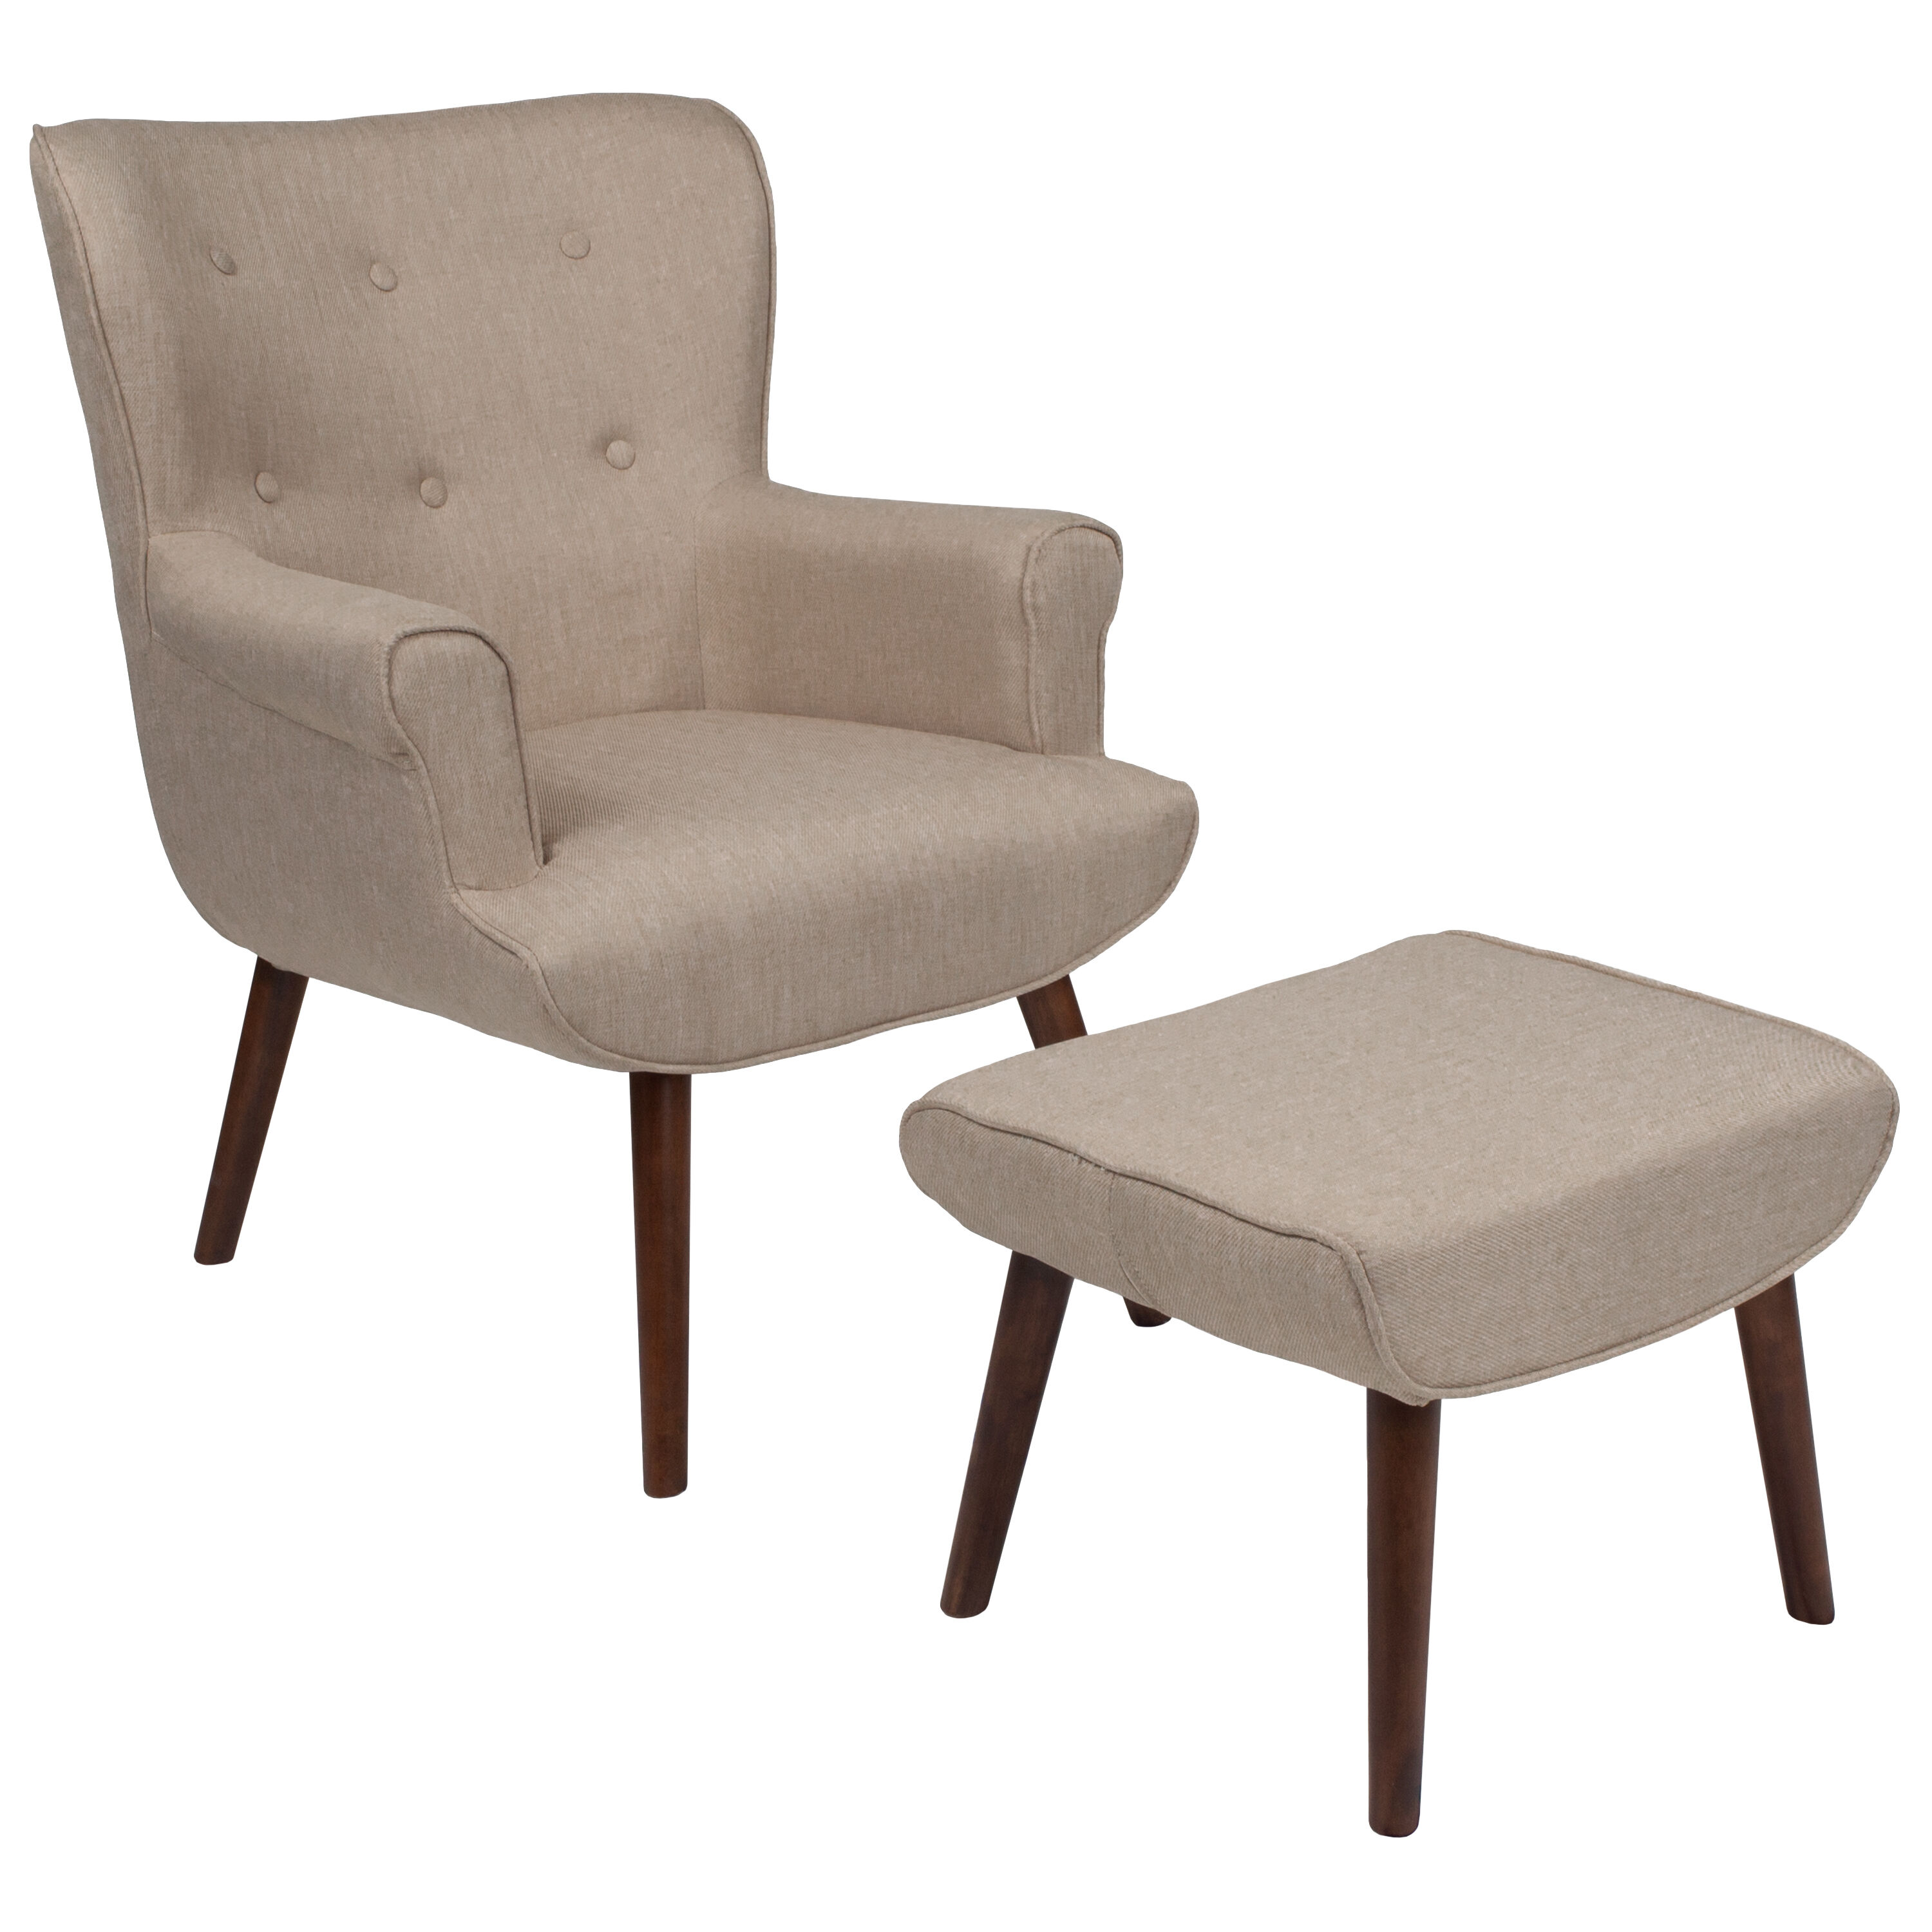 ... Our Bayton Upholstered Wingback Chair With Ottoman In Beige Fabric Is  On Sale Now.